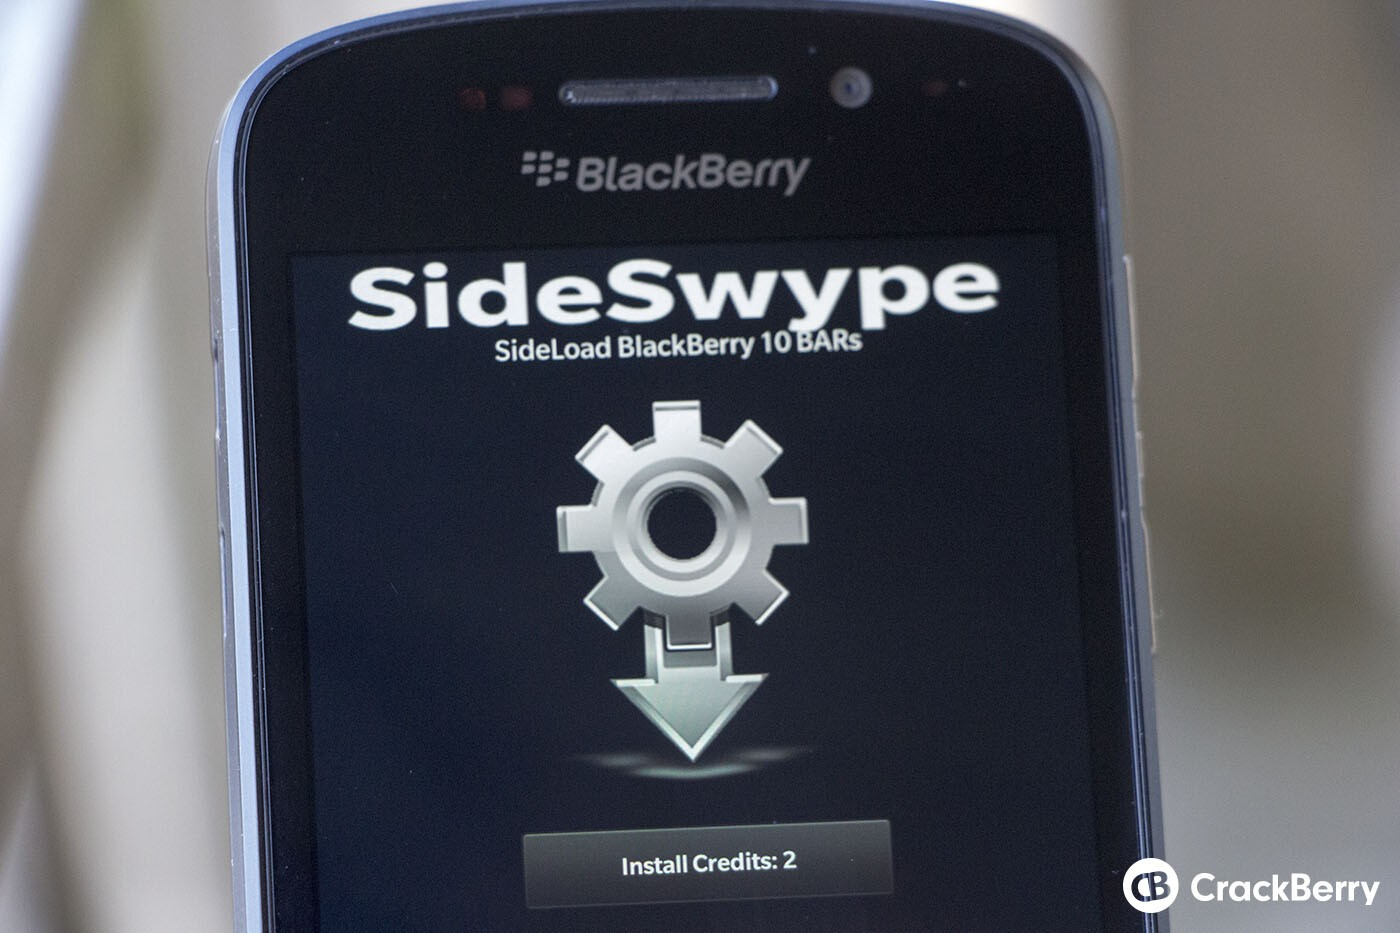 SideSwype offers you the ability to sideload BAR and Android APK